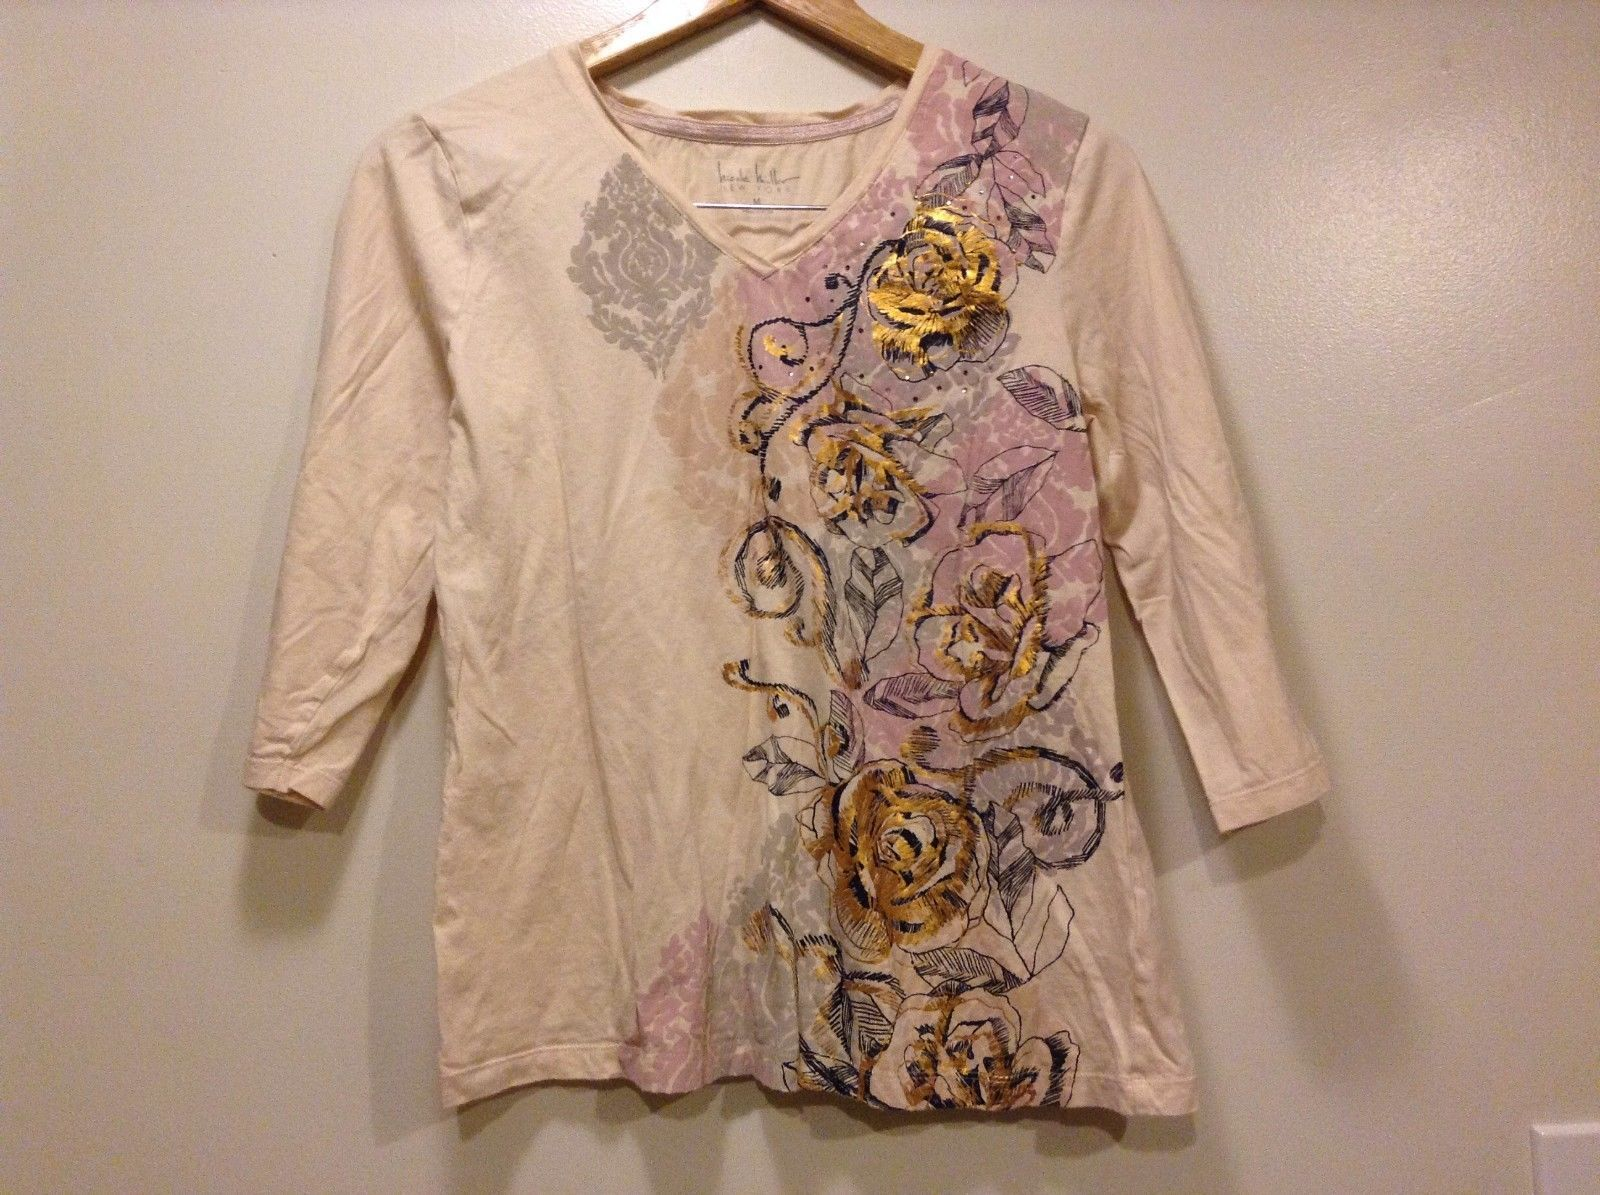 Great Condition Nicole Miller Medium 100% Cotton Pale Pink Shirt Floral Design